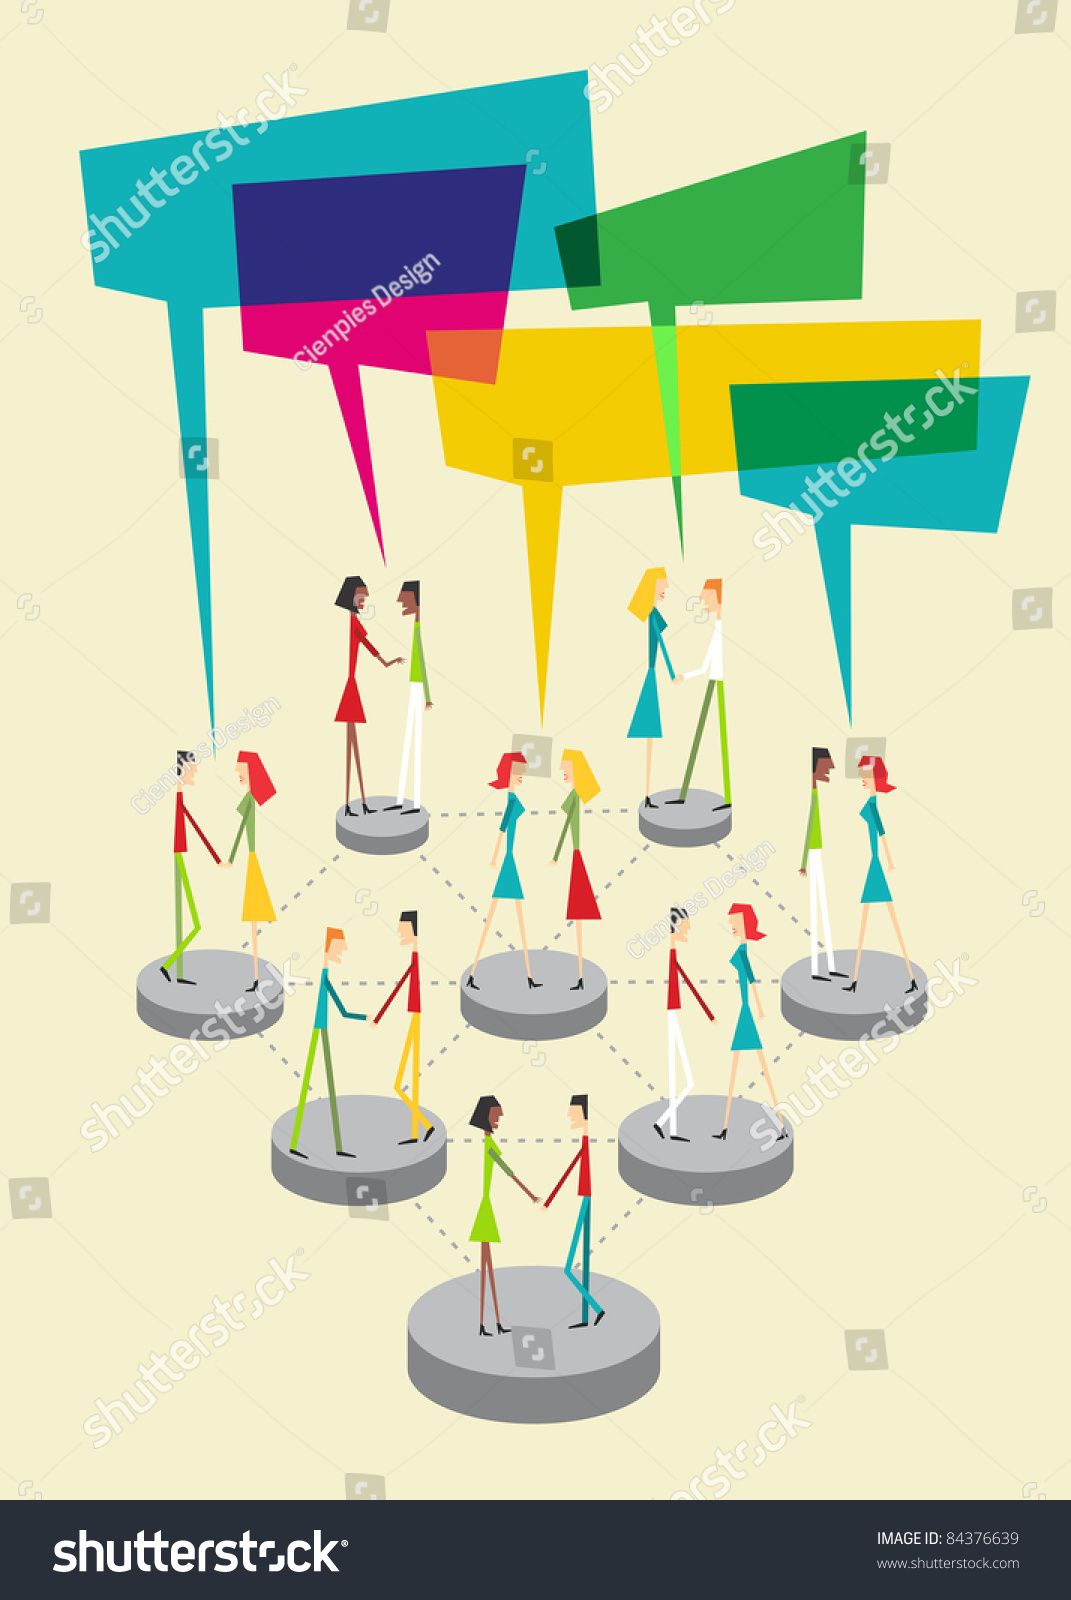 Web social relationship diagram showing people stock vector 84376639 web social relationship diagram showing people connected with colorful sticky balloons ccuart Gallery